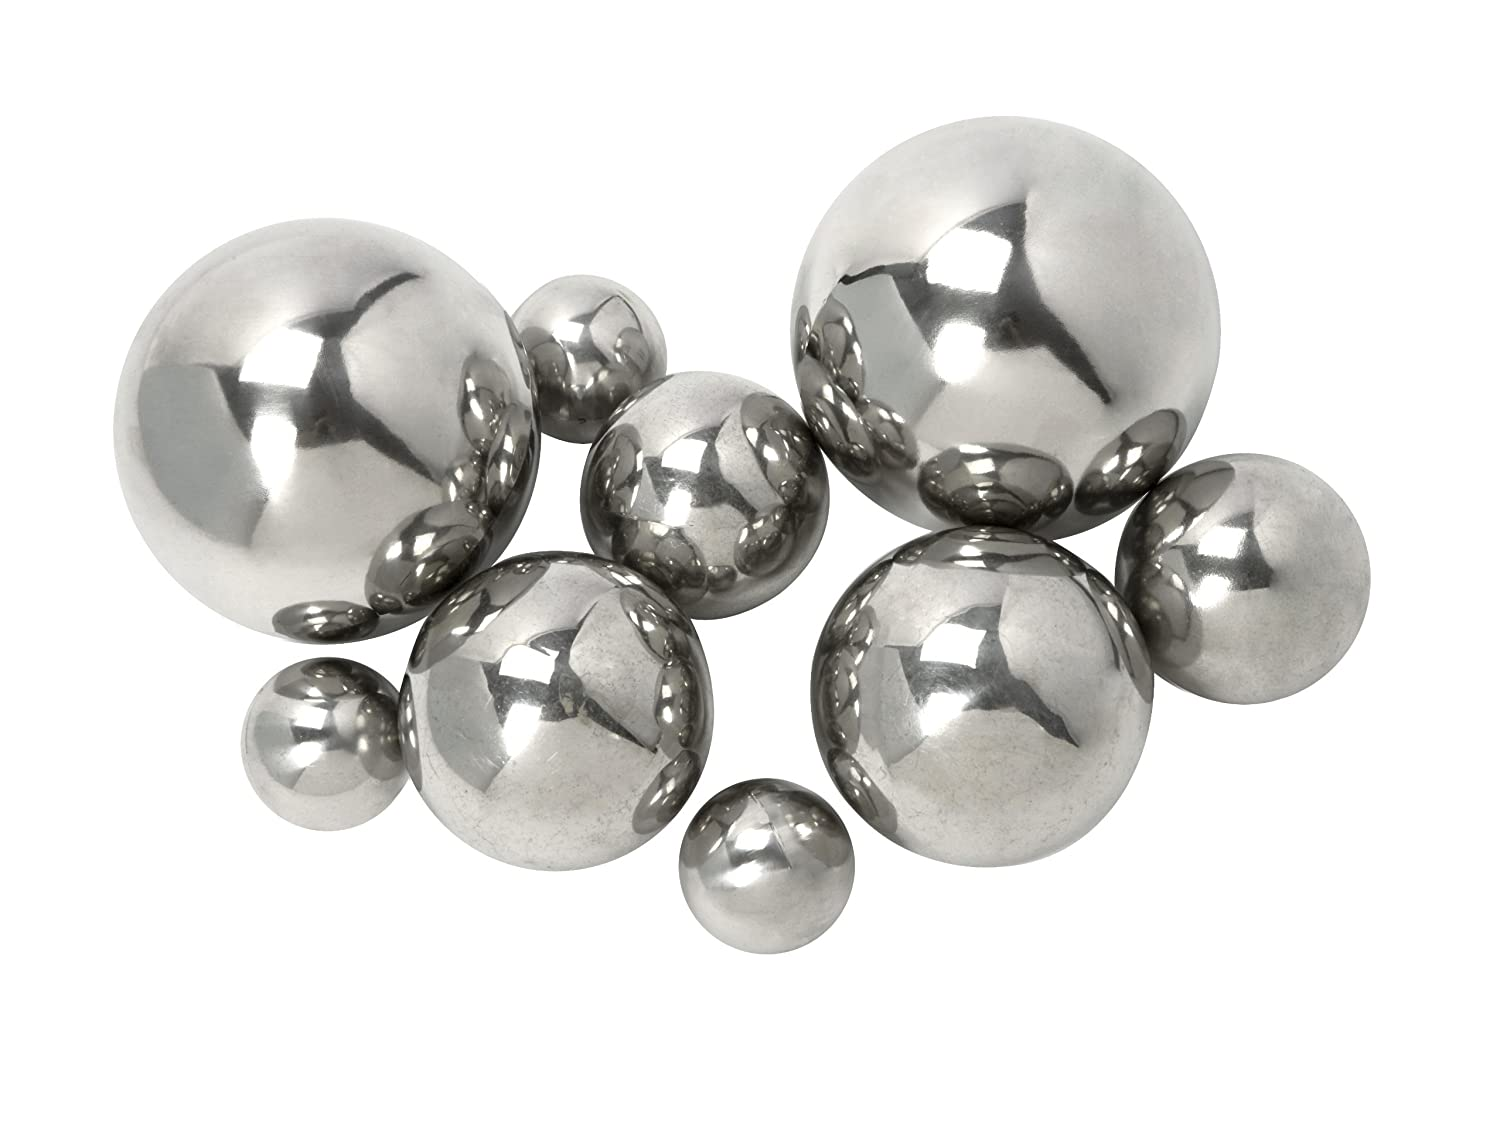 Amazon.com: Imax 10889-9 CKI Abbott Steel Decorative Ball, Set of 9 ...